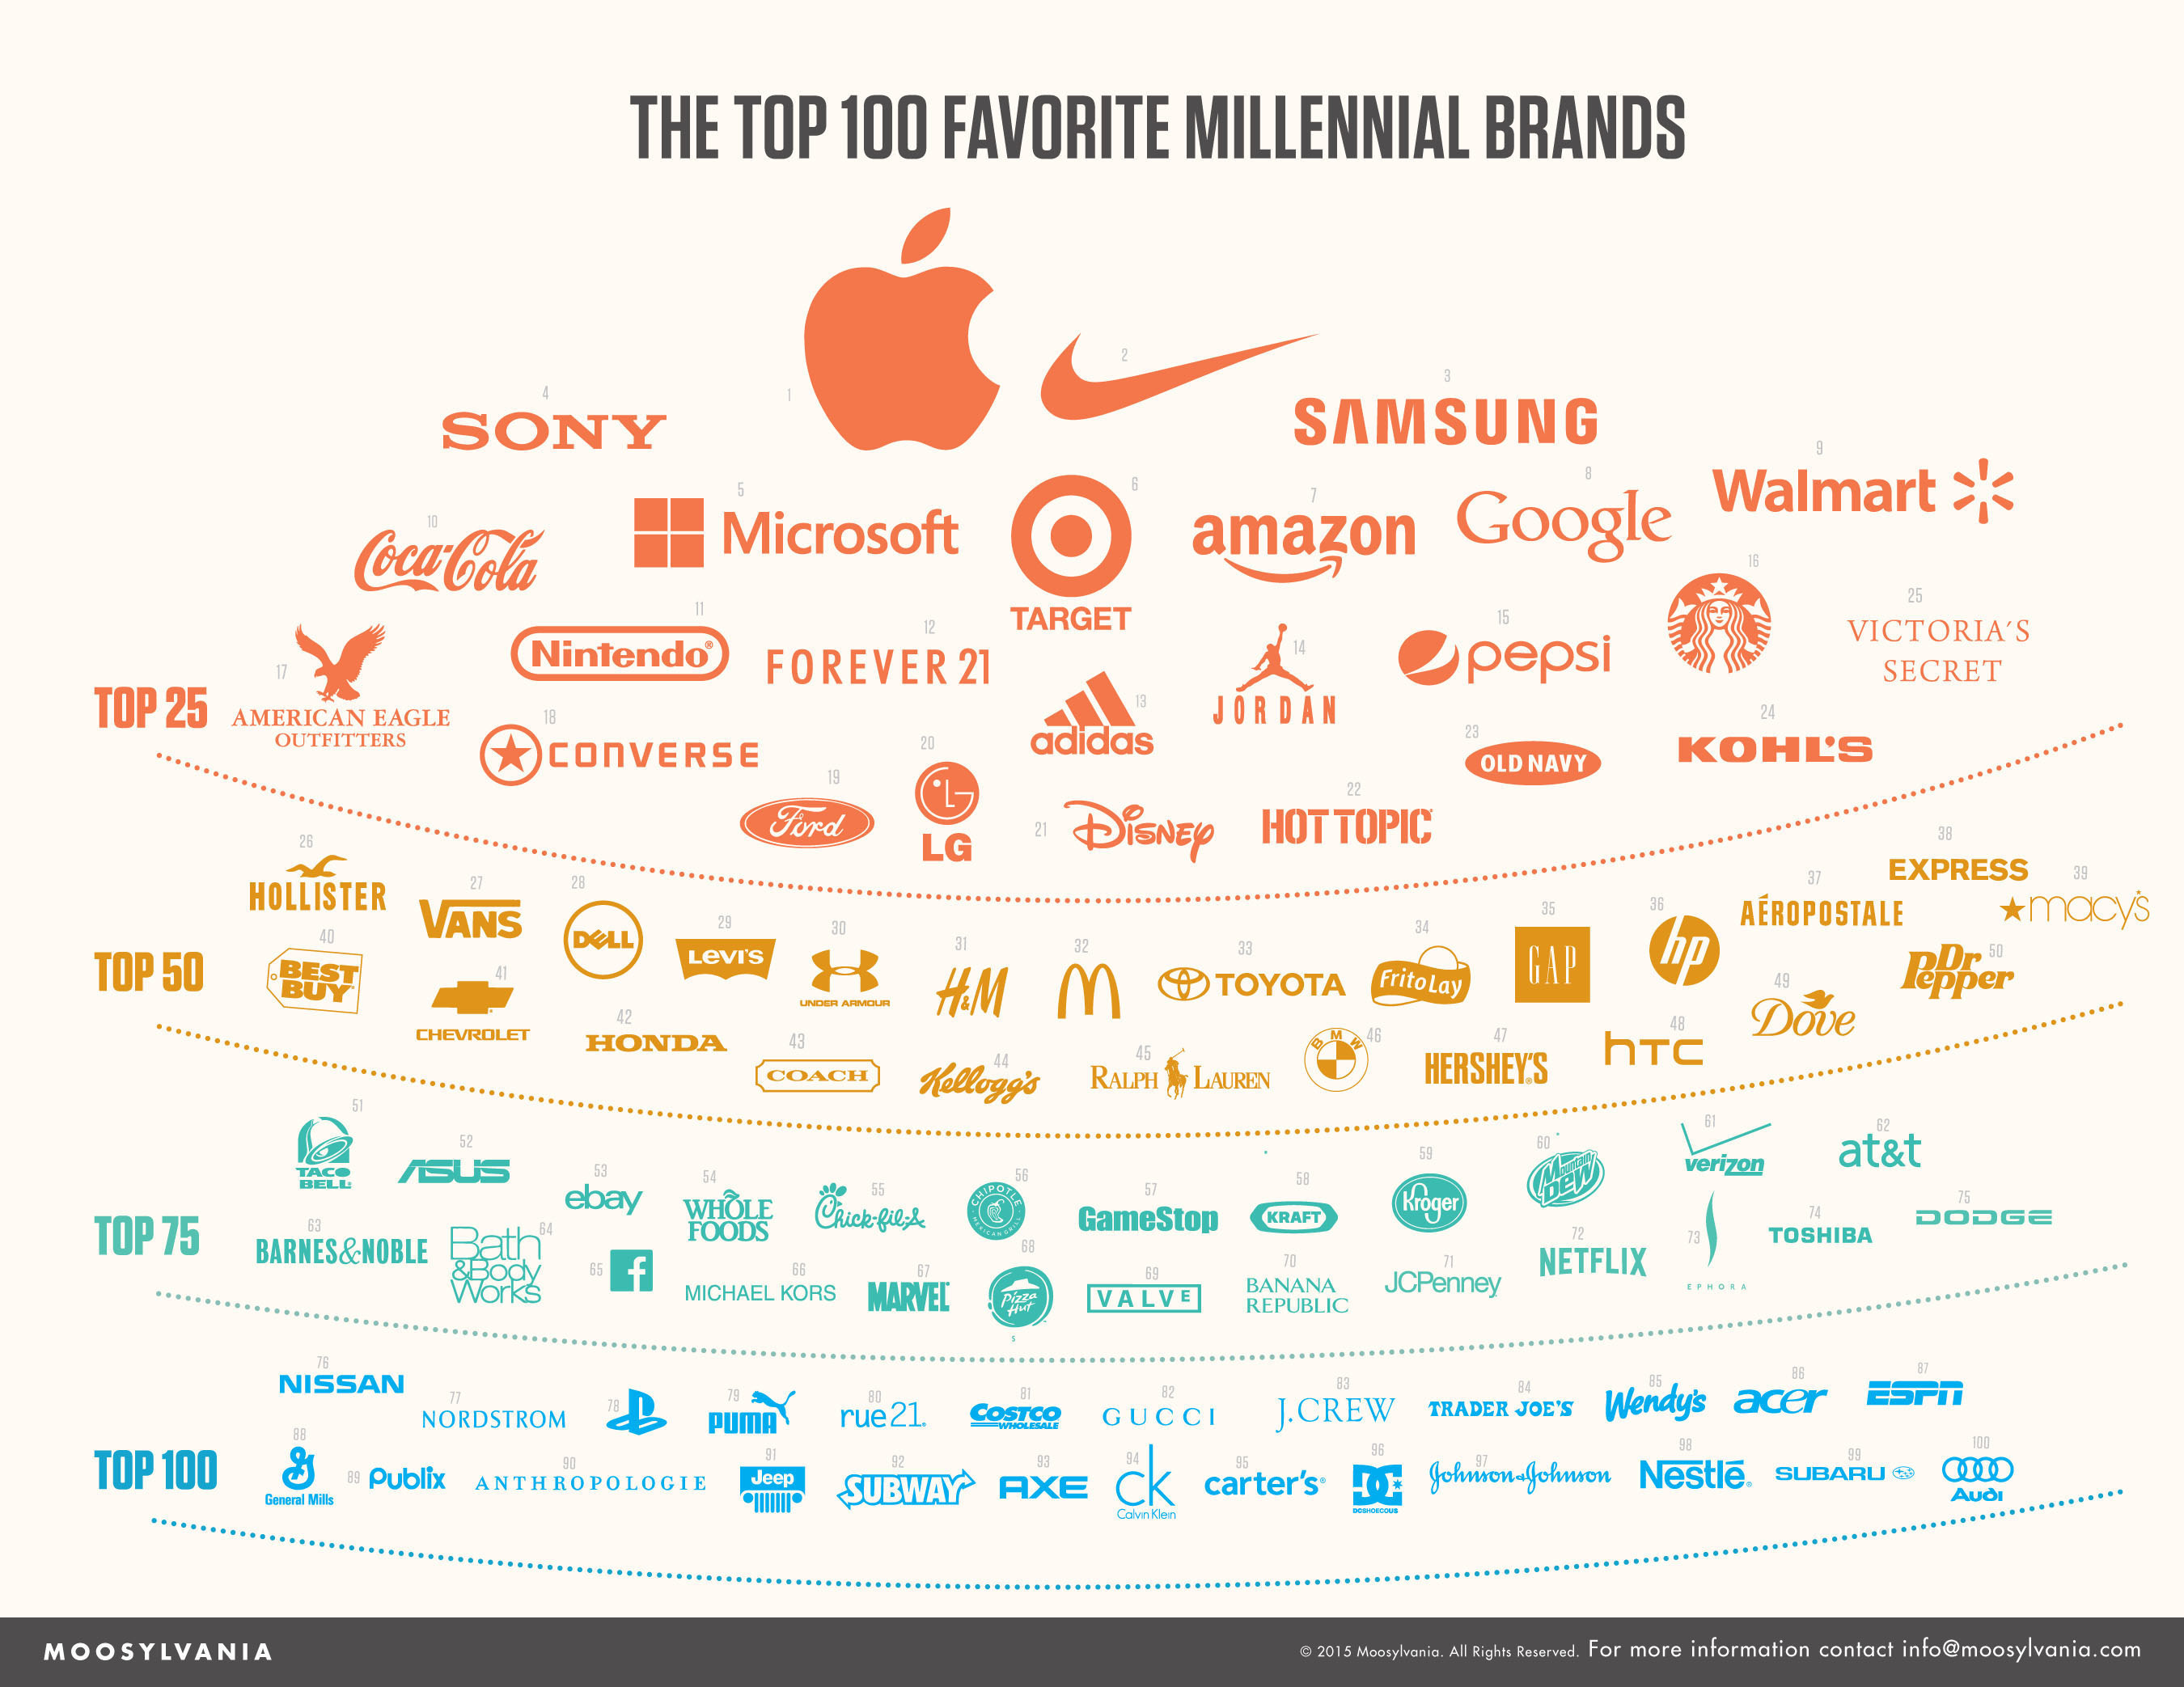 Top 100 Millennial Brands